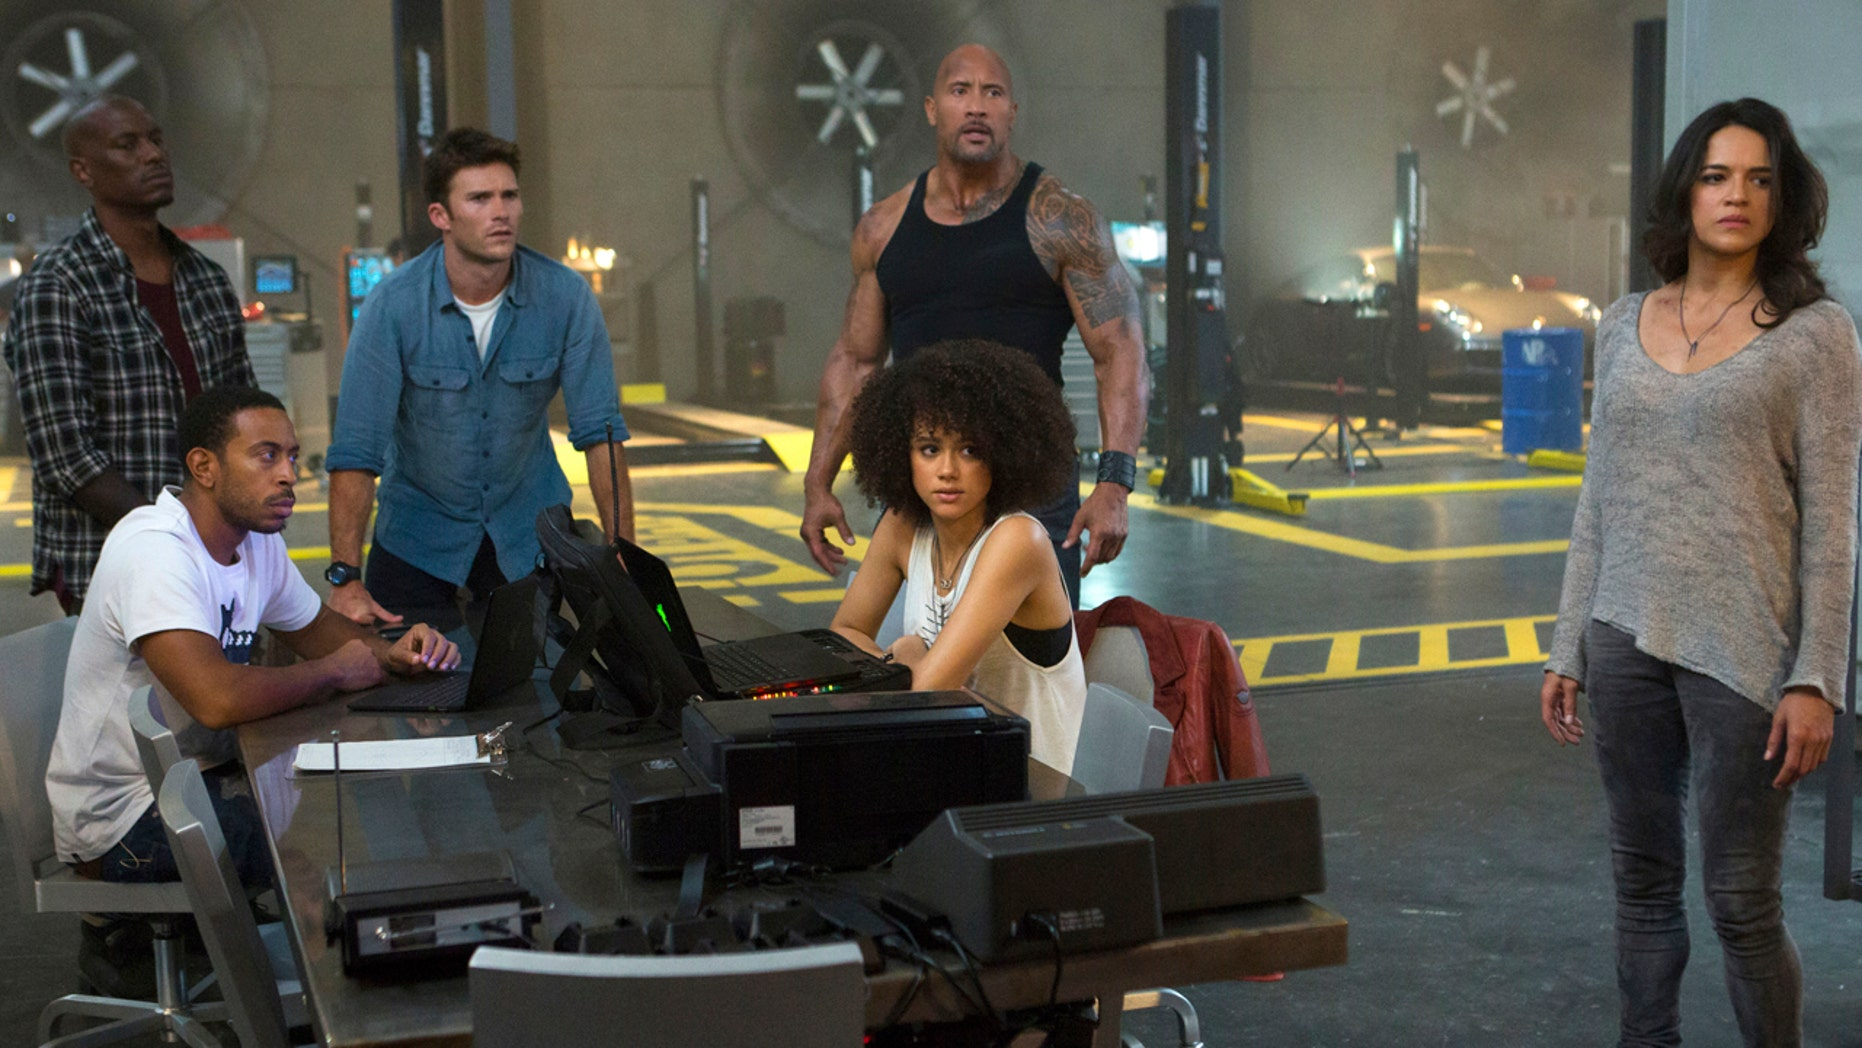 """This image released by Universal Pictures shows, Chris """"Ludacris"""" Bridges, seated left, and Nathalie Emmanuel, seated right, and Tyrese Gibson, standing from left, Scott Eastwood, Dwayne Johnson and Michelle Rodriguez in """"The Fate of the Furious."""""""